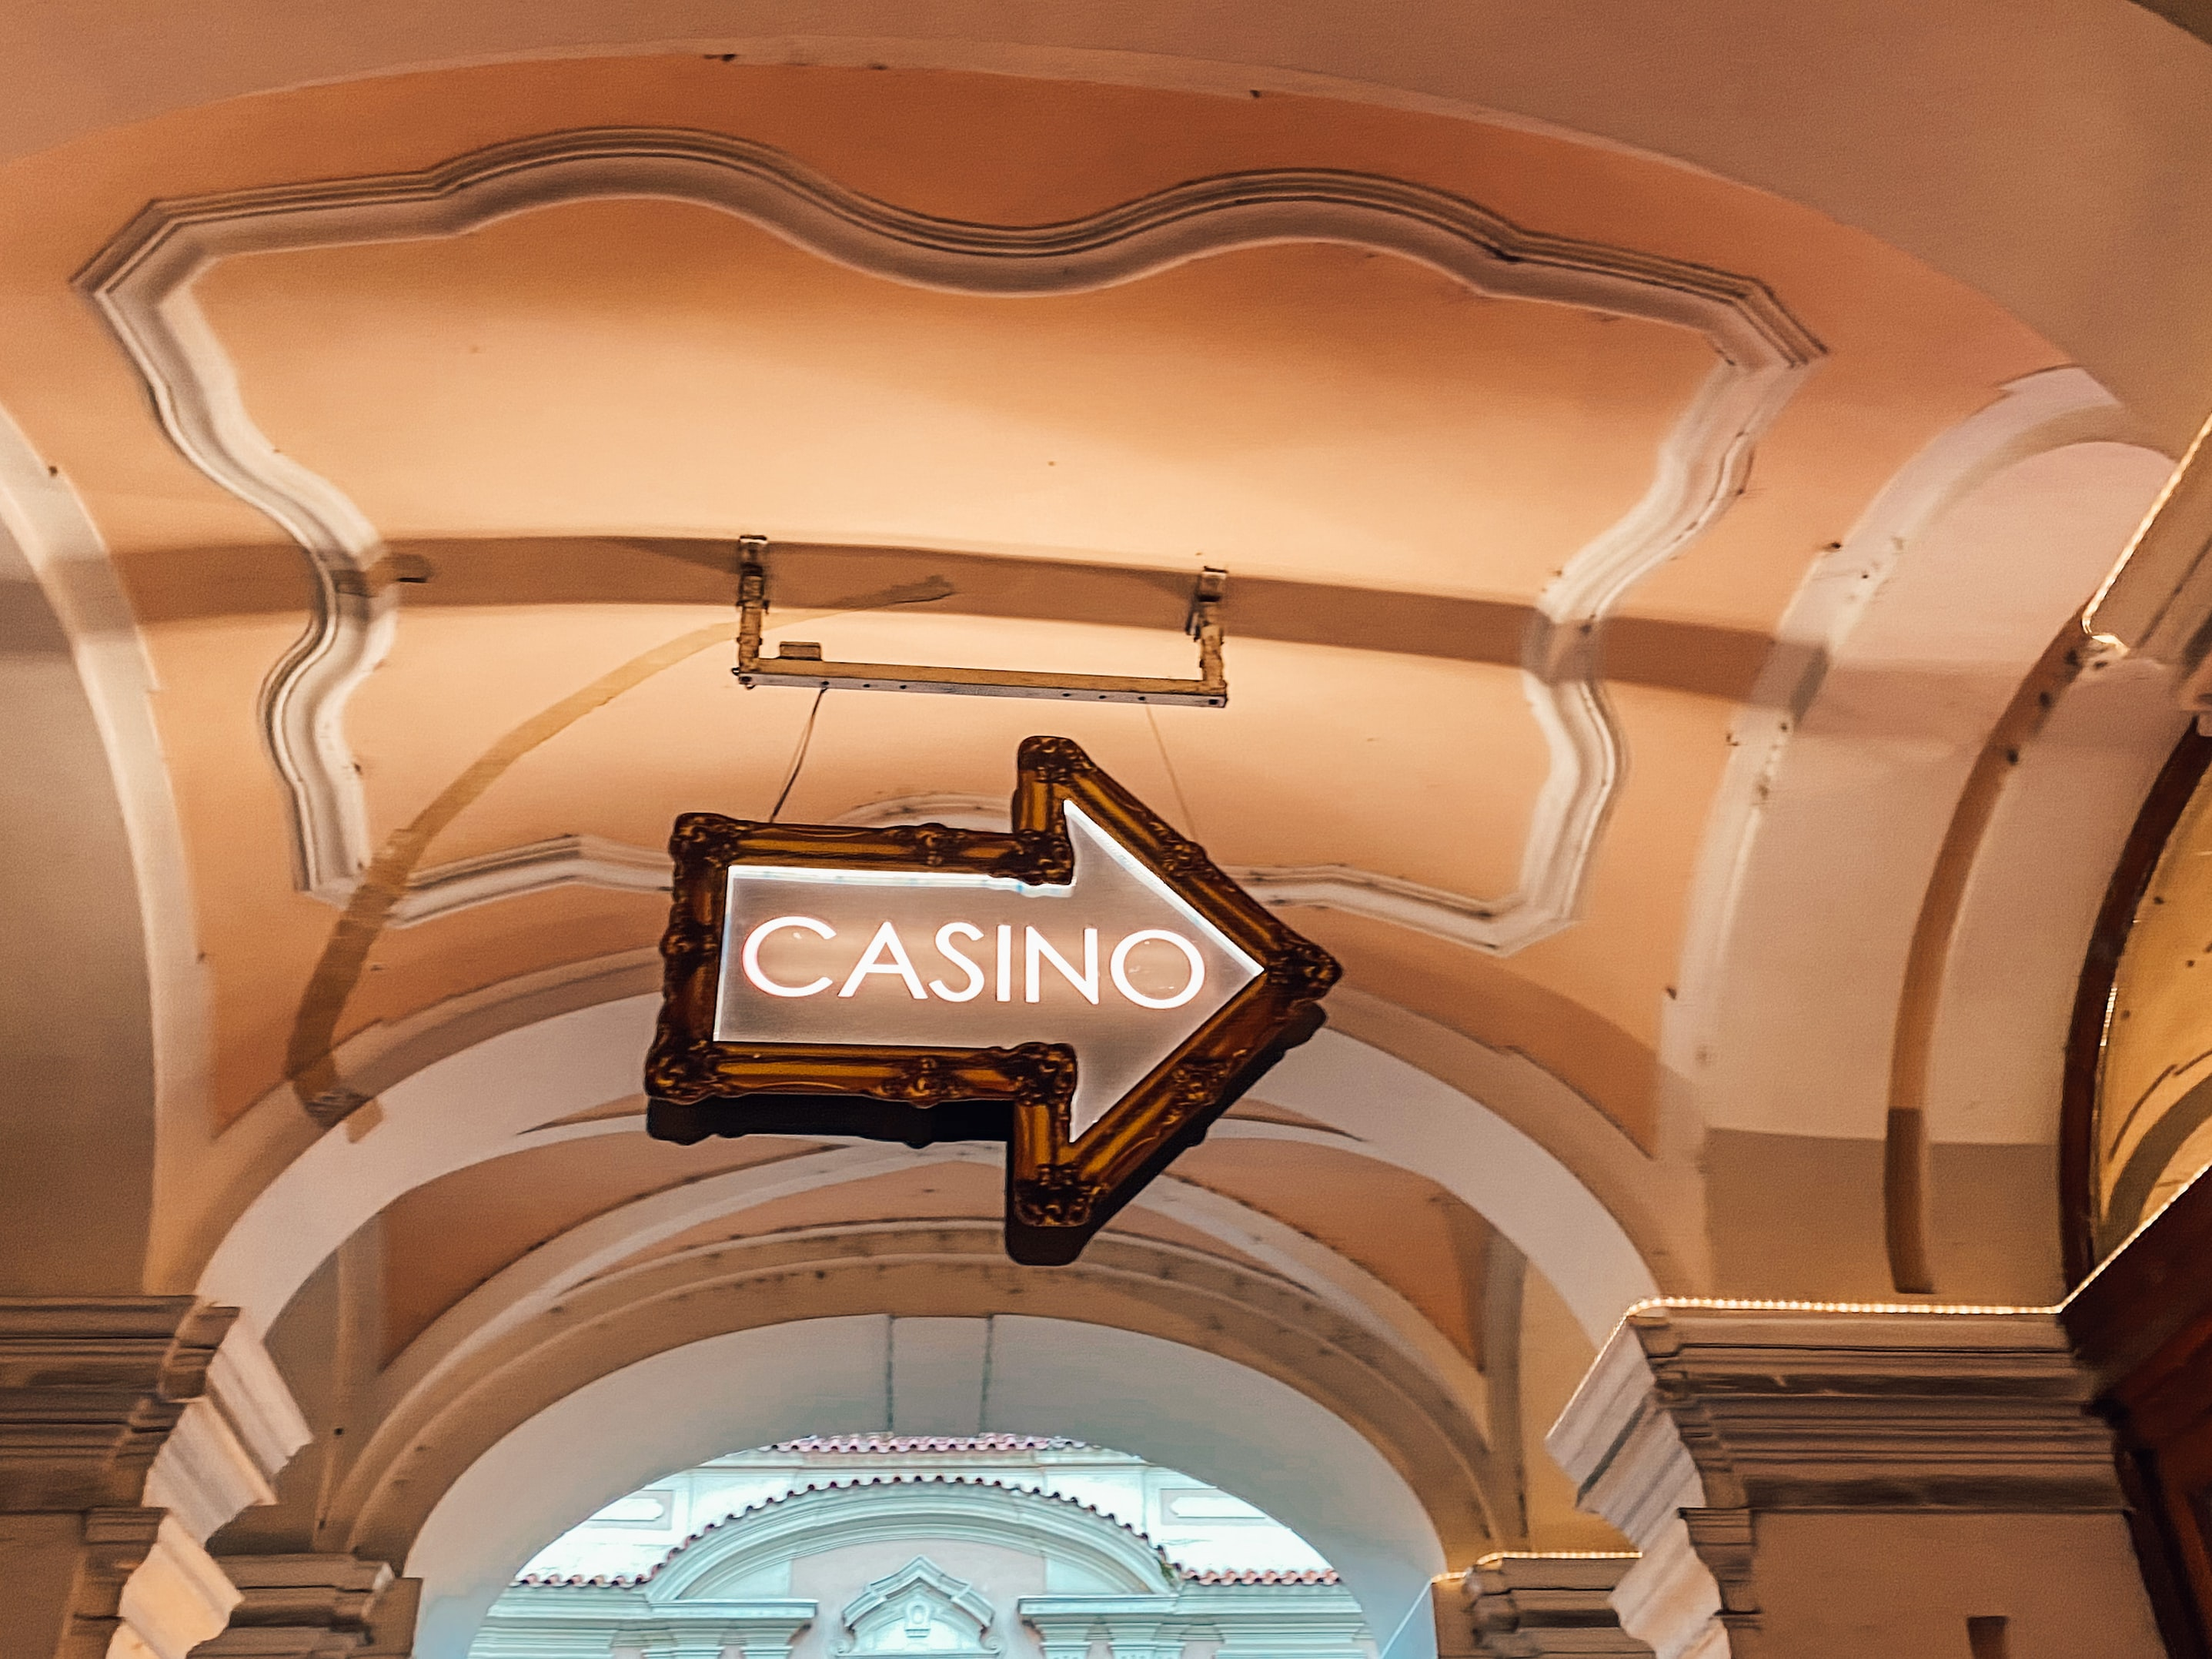 THE INTERNET AS A POWERFUL TOOL FOR GAMBLING